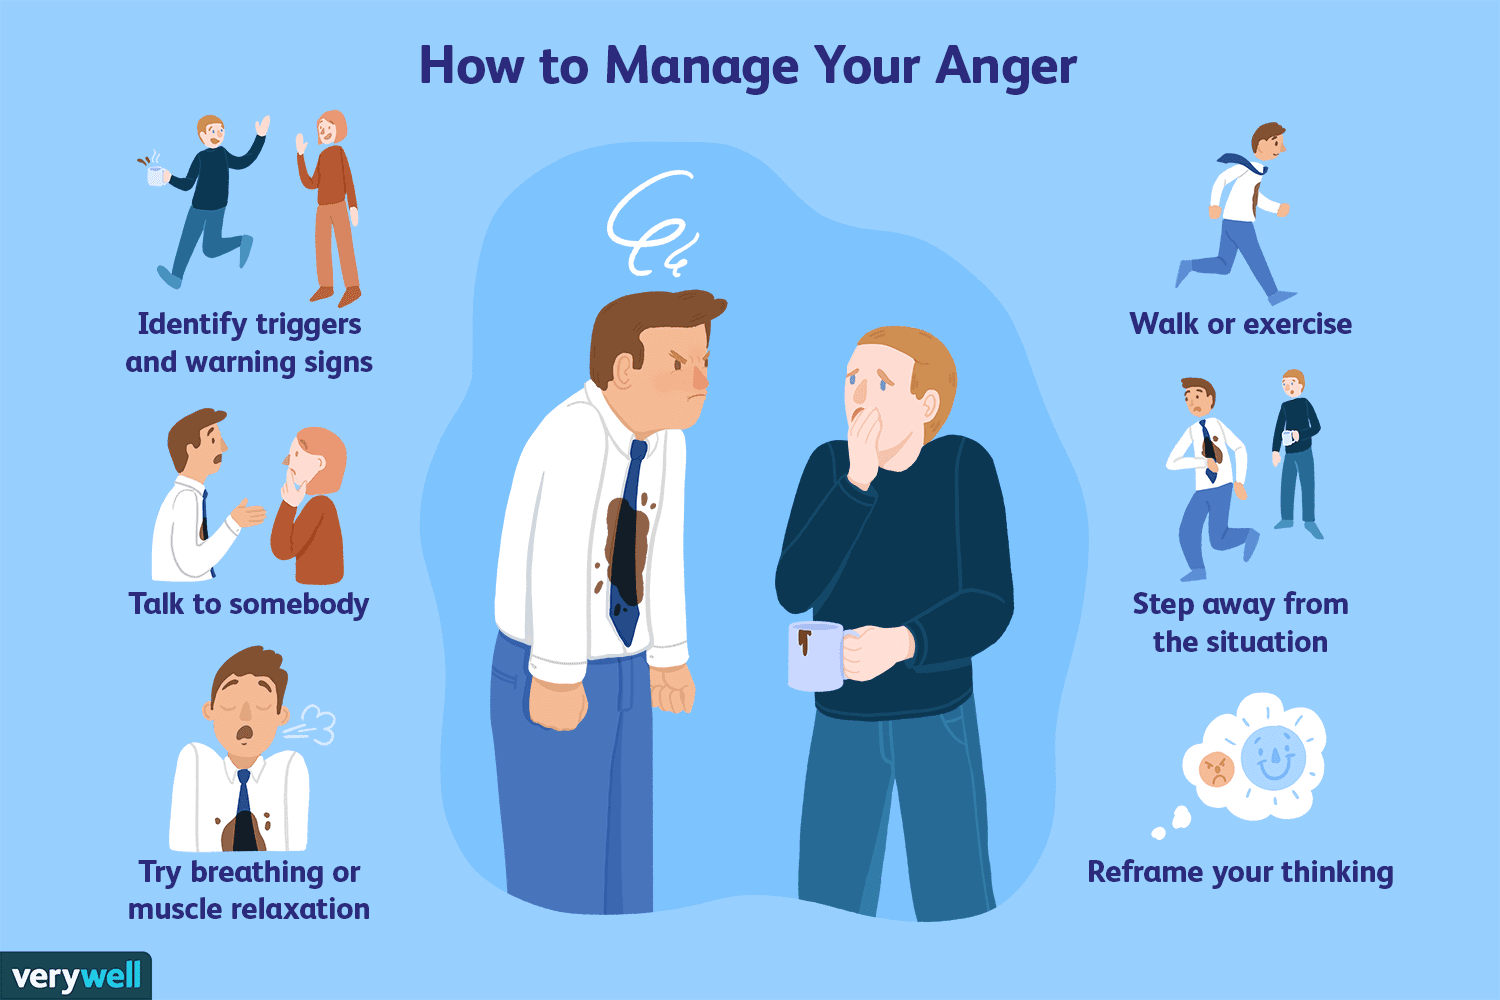 How to manage your anger illustration